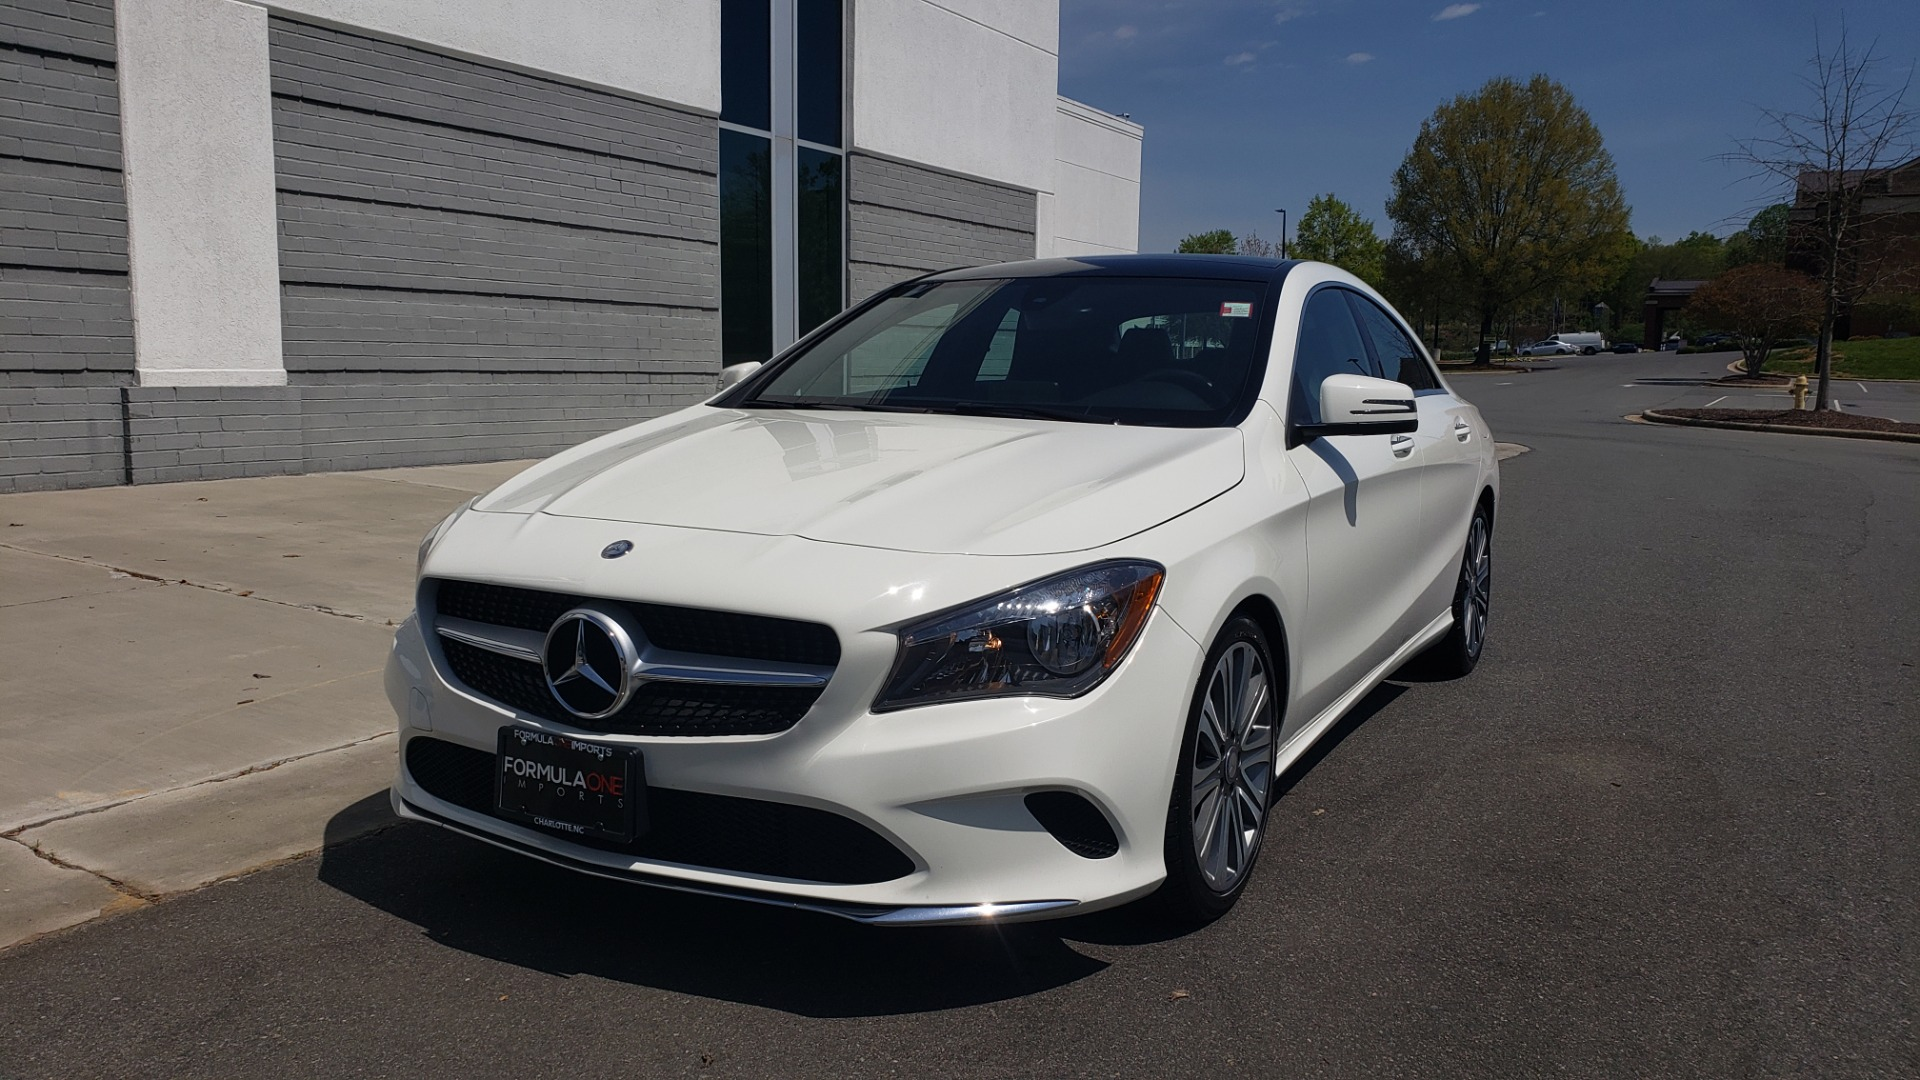 Used 2018 Mercedes-Benz CLA 250 4MATIC PREMIUM / PANO-ROOF / CONV PKG / APPLE / REARVIEW for sale $25,395 at Formula Imports in Charlotte NC 28227 2